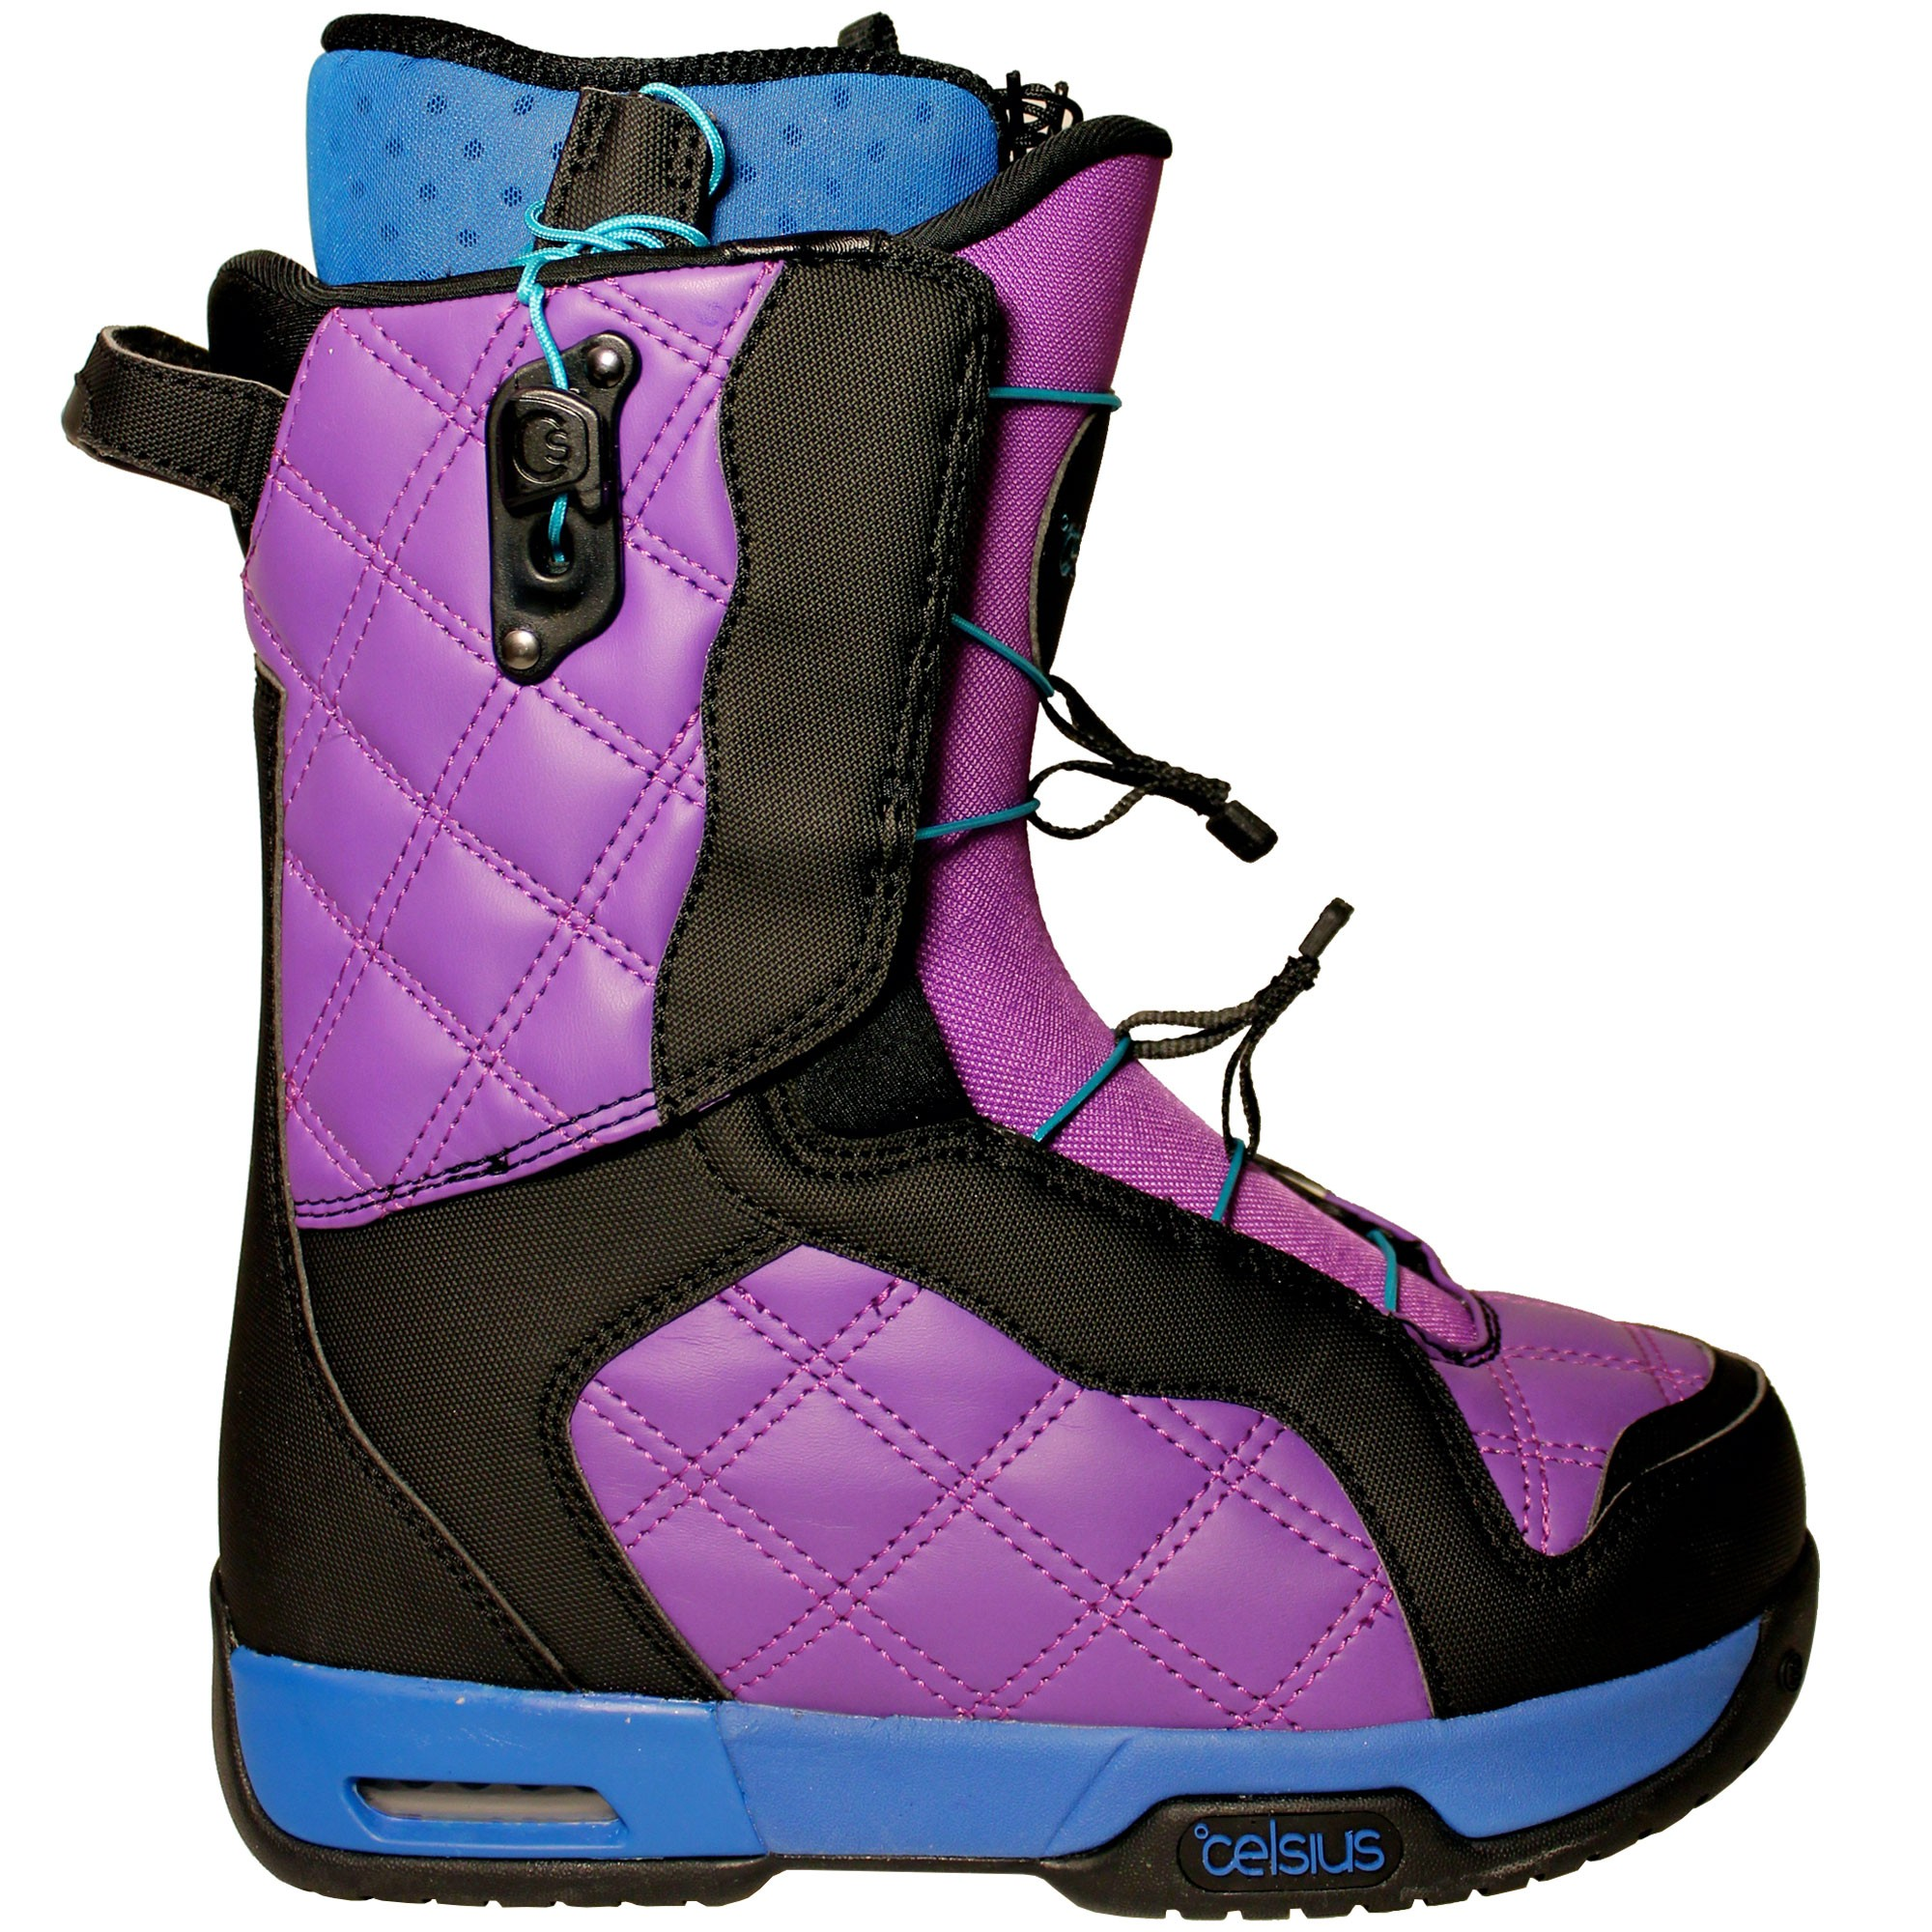 Celsius Cosmo O.Zone Speed Laces Womens Snowboard Boots - Purple